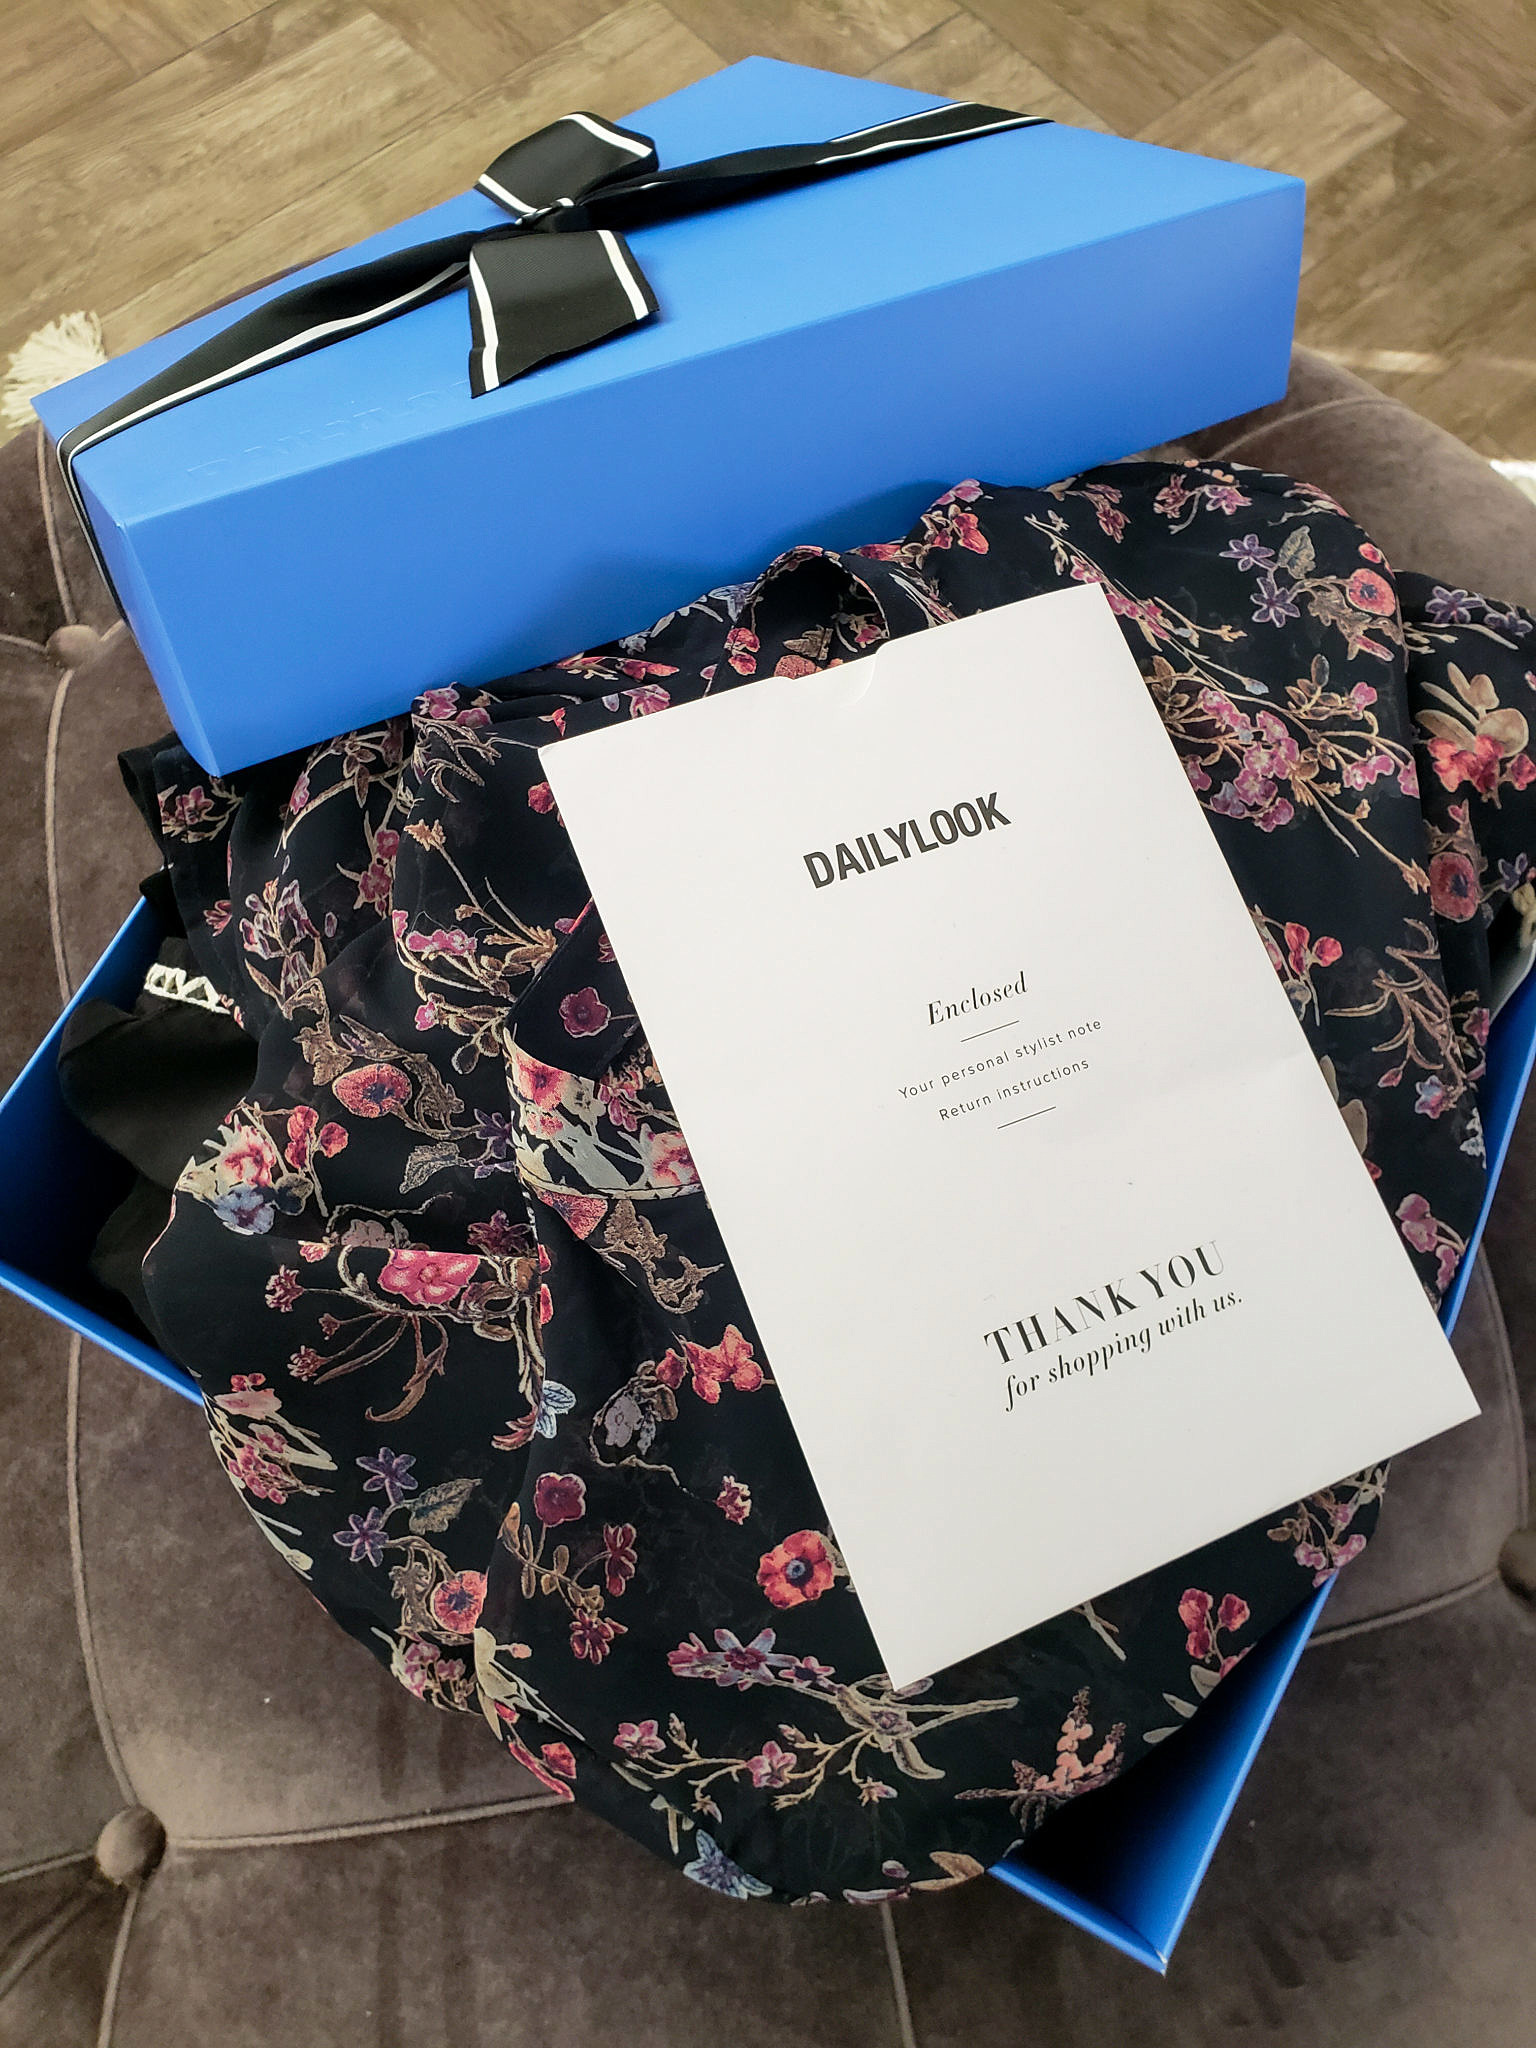 Have you tried the DailyLook Subscription Box? Orange County Style Blogger Debbie Savage is sharing inside her first DailyLook Subscription box here!